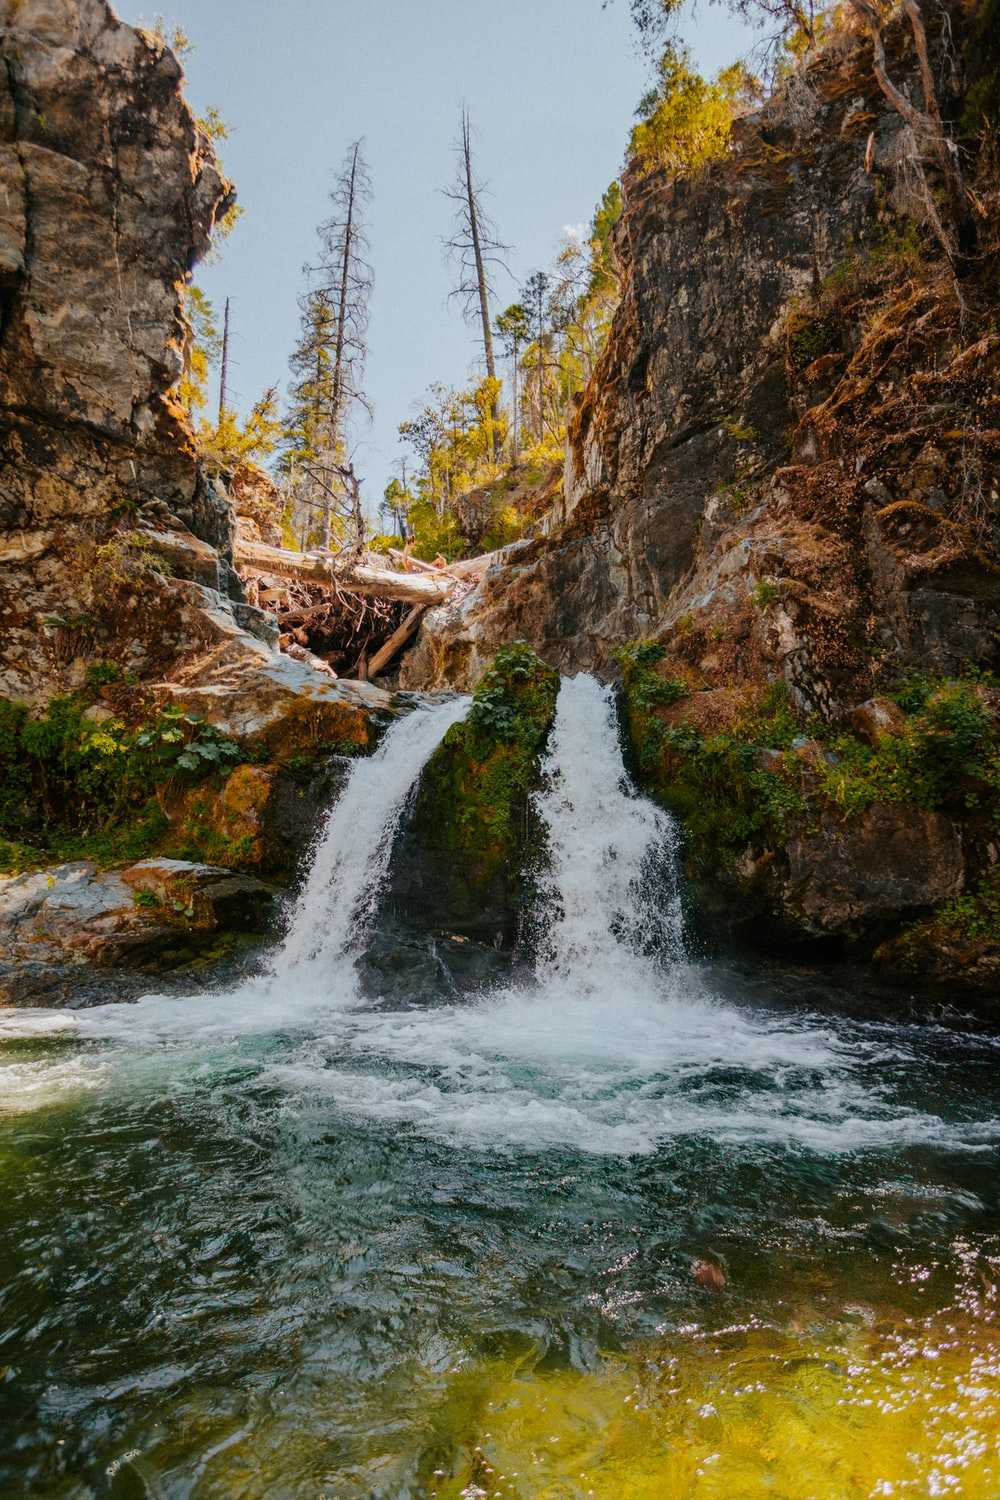 water falls between brown rock formation during daytime